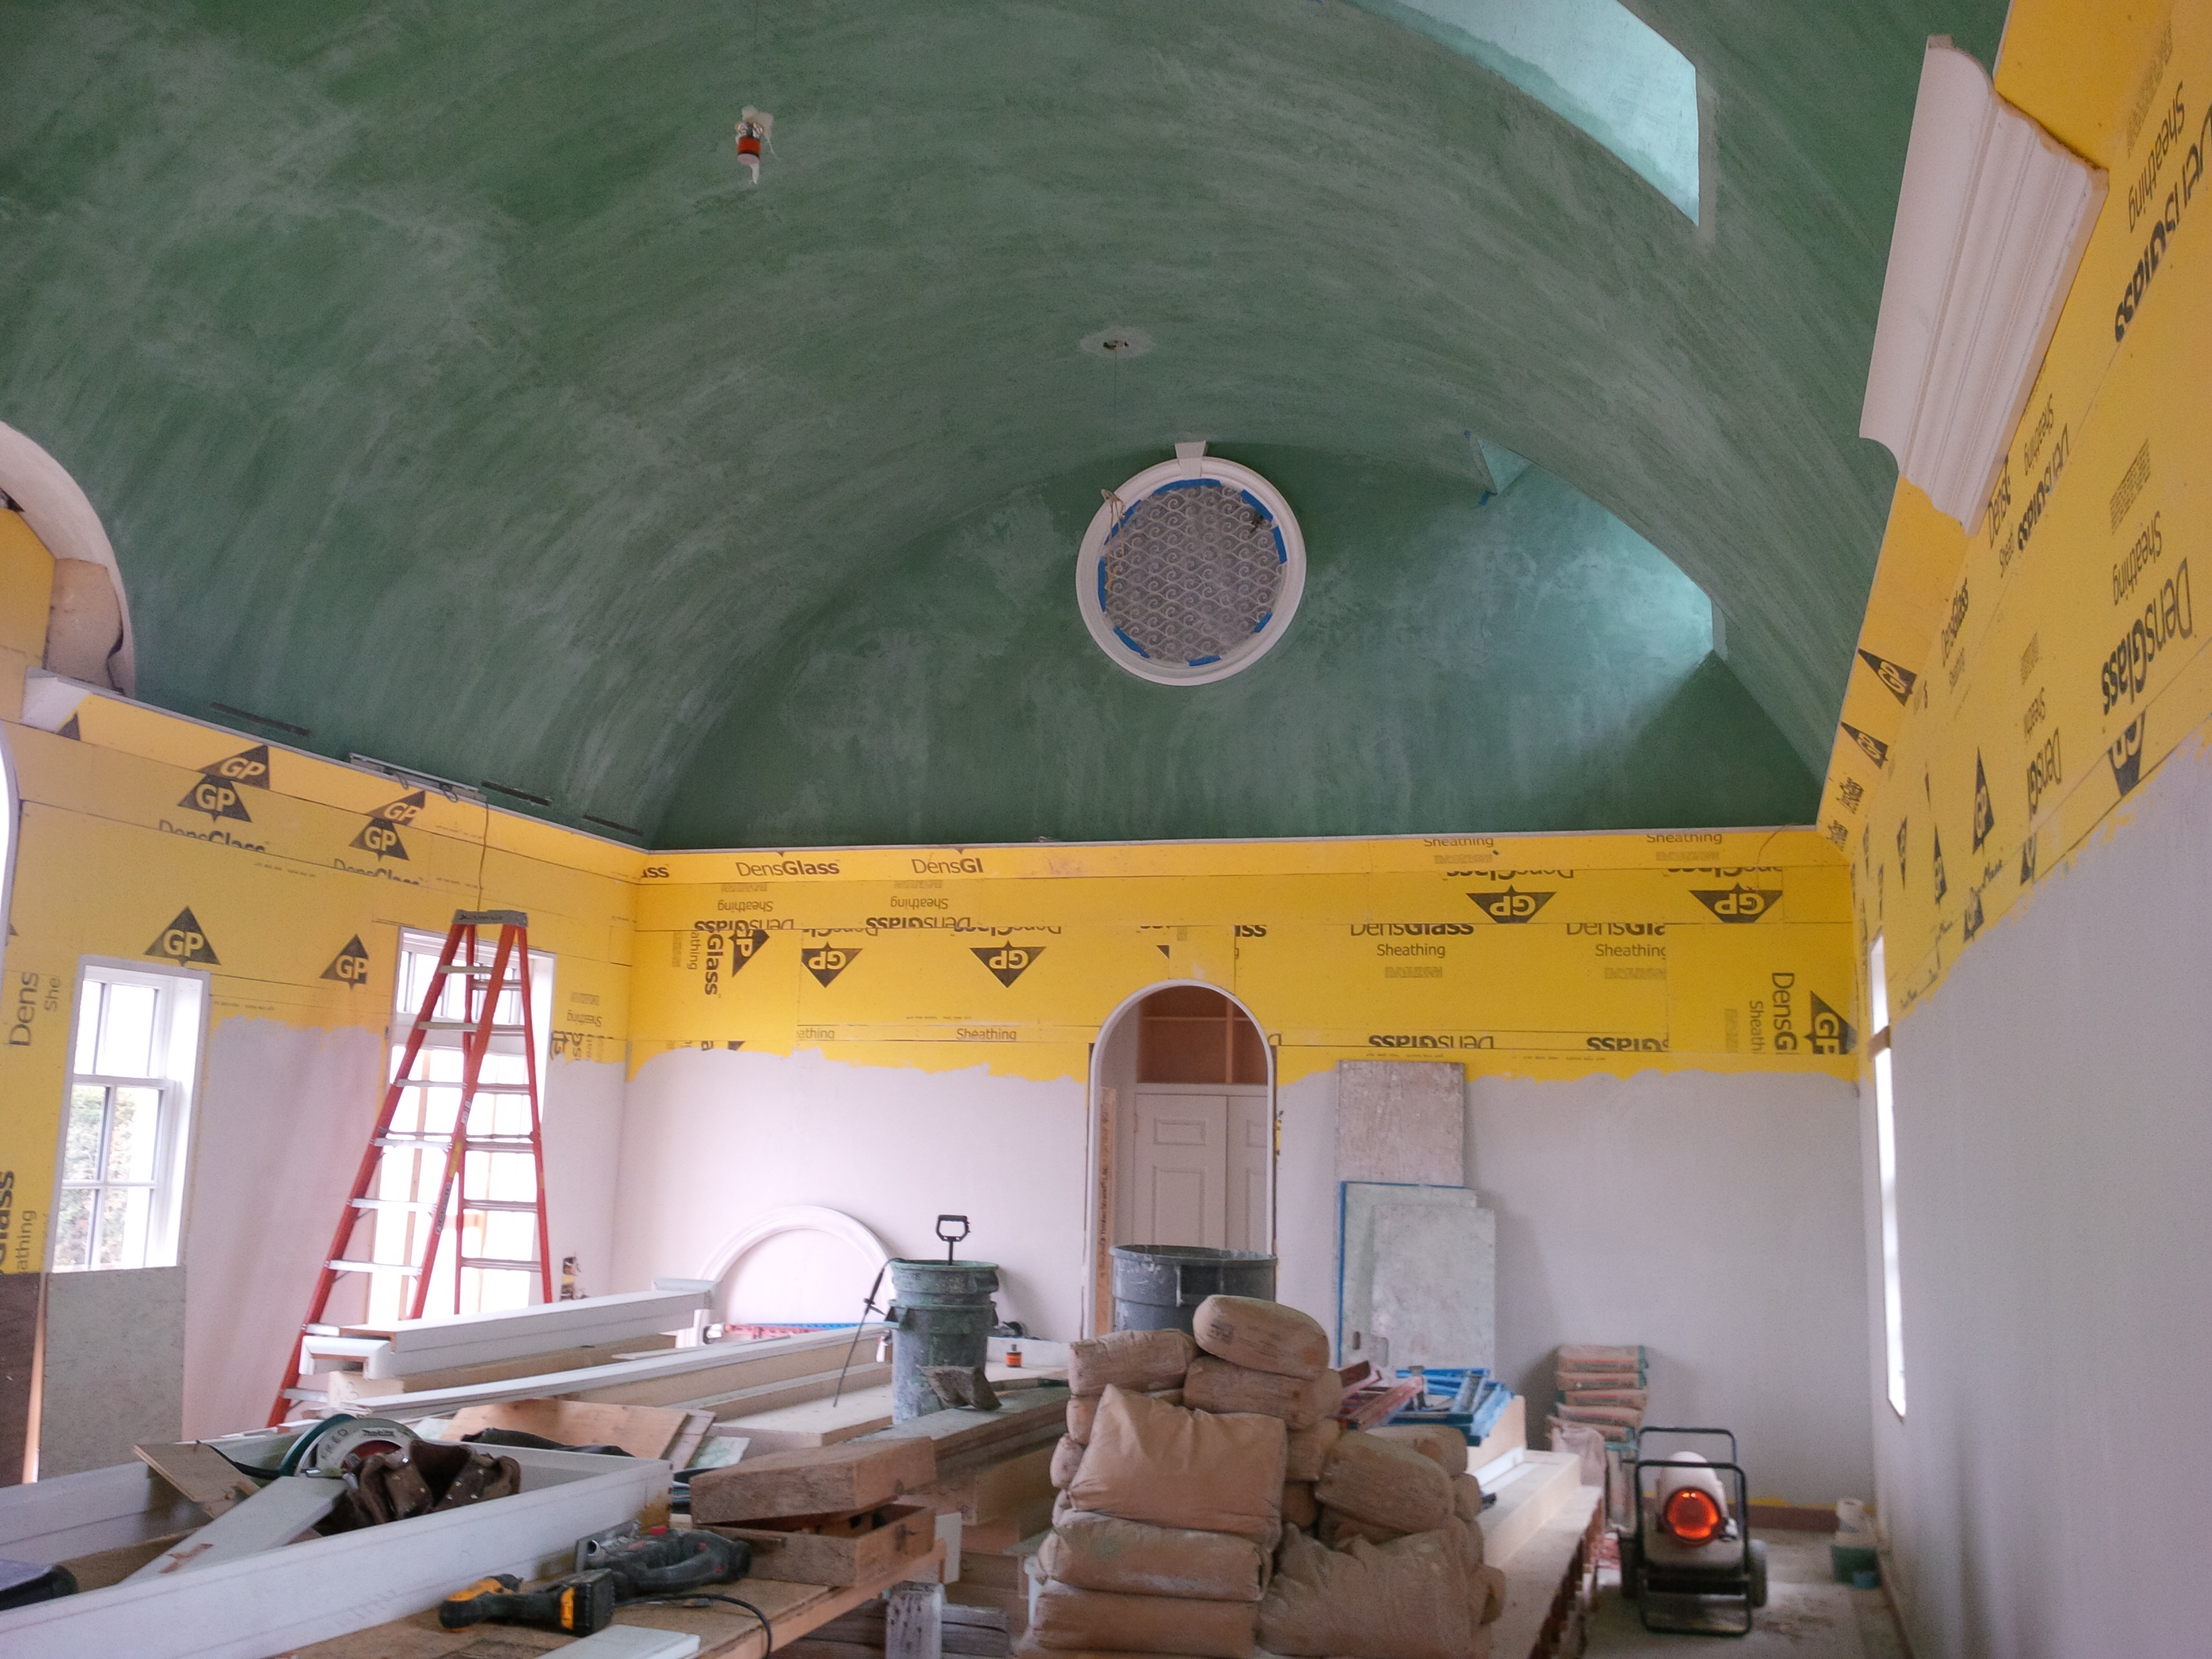 modern plaster ceiling vault - How To Vault A Ceiling